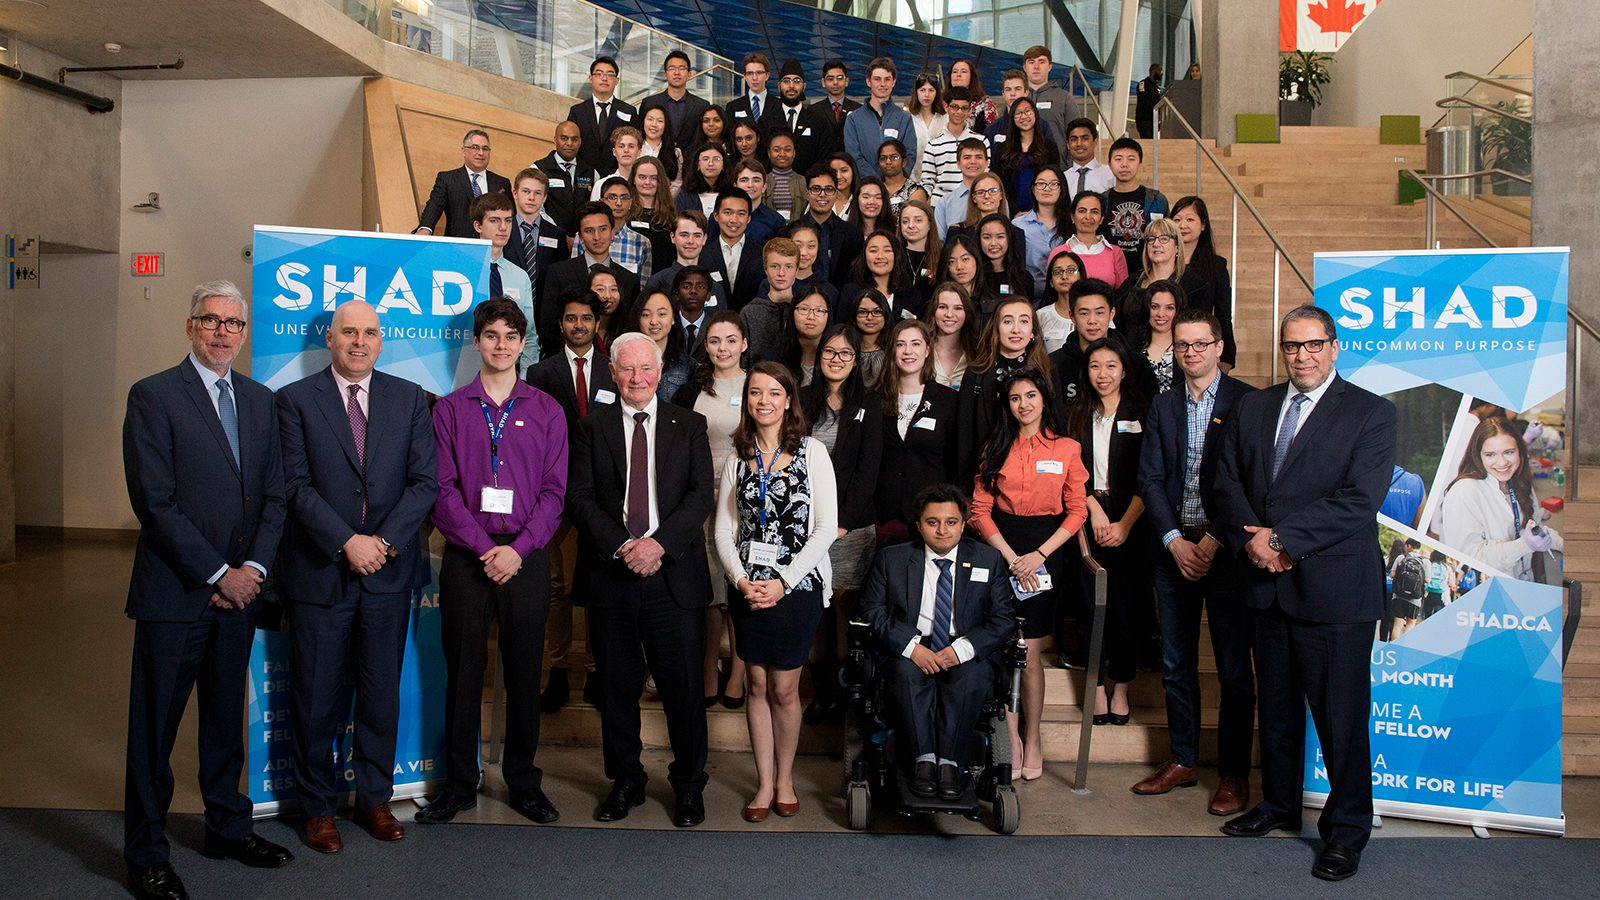 Group photo of executives and students together on stairs next to SHAD banners.